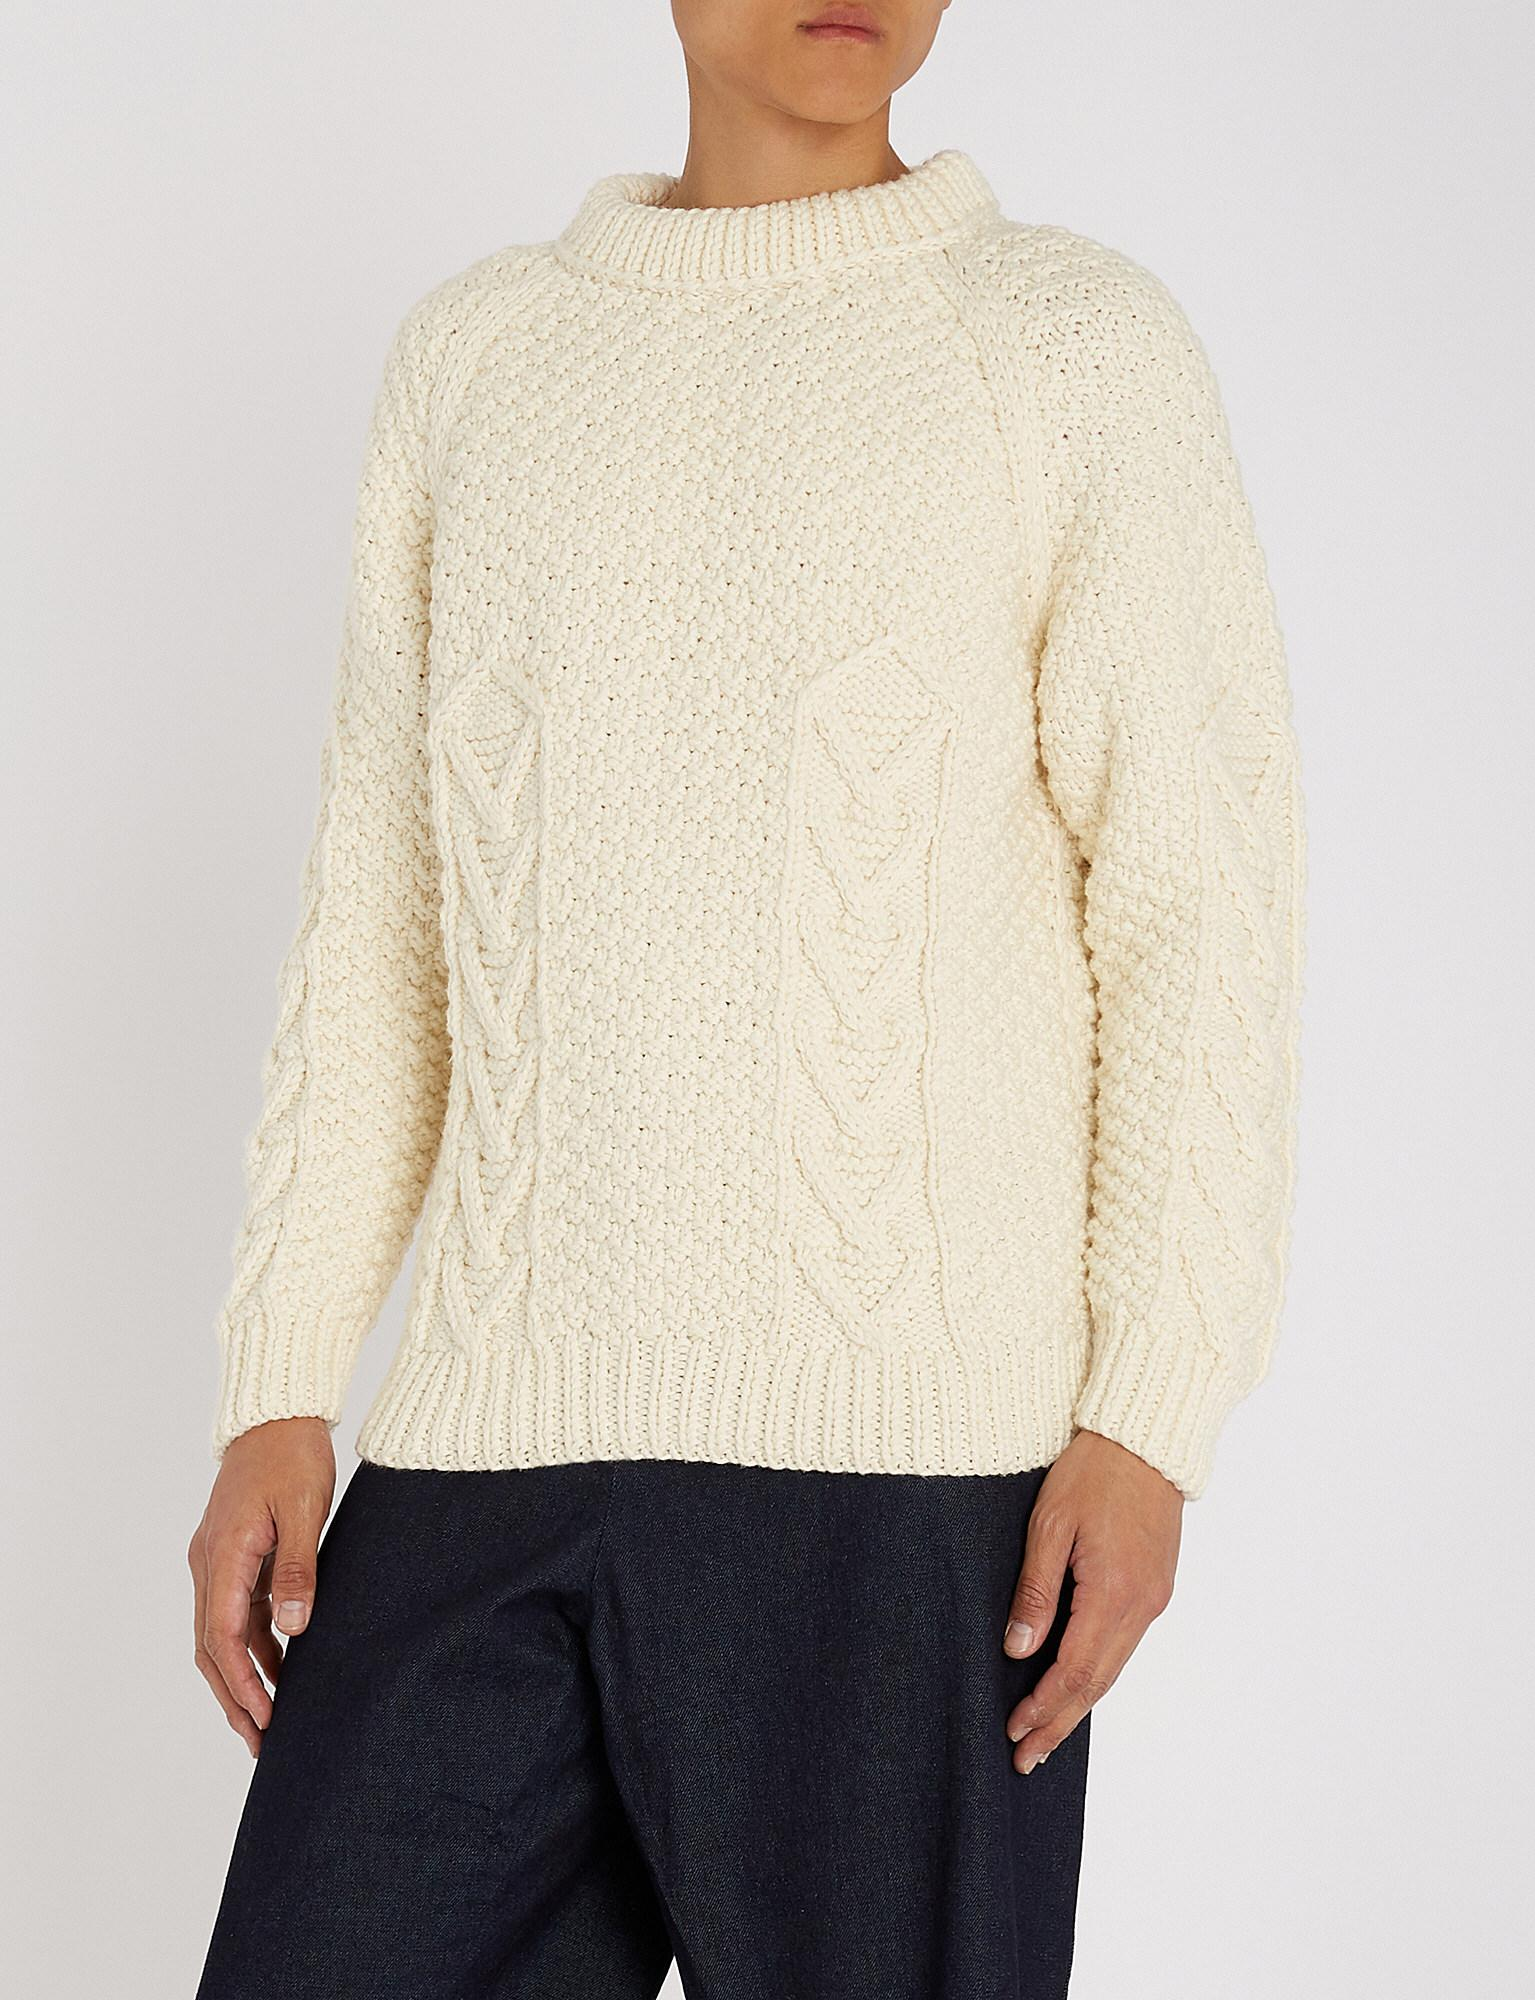 3c91032f0c Loewe Logo-embroidered Cable-knit Wool Jumper in Natural for Men - Lyst